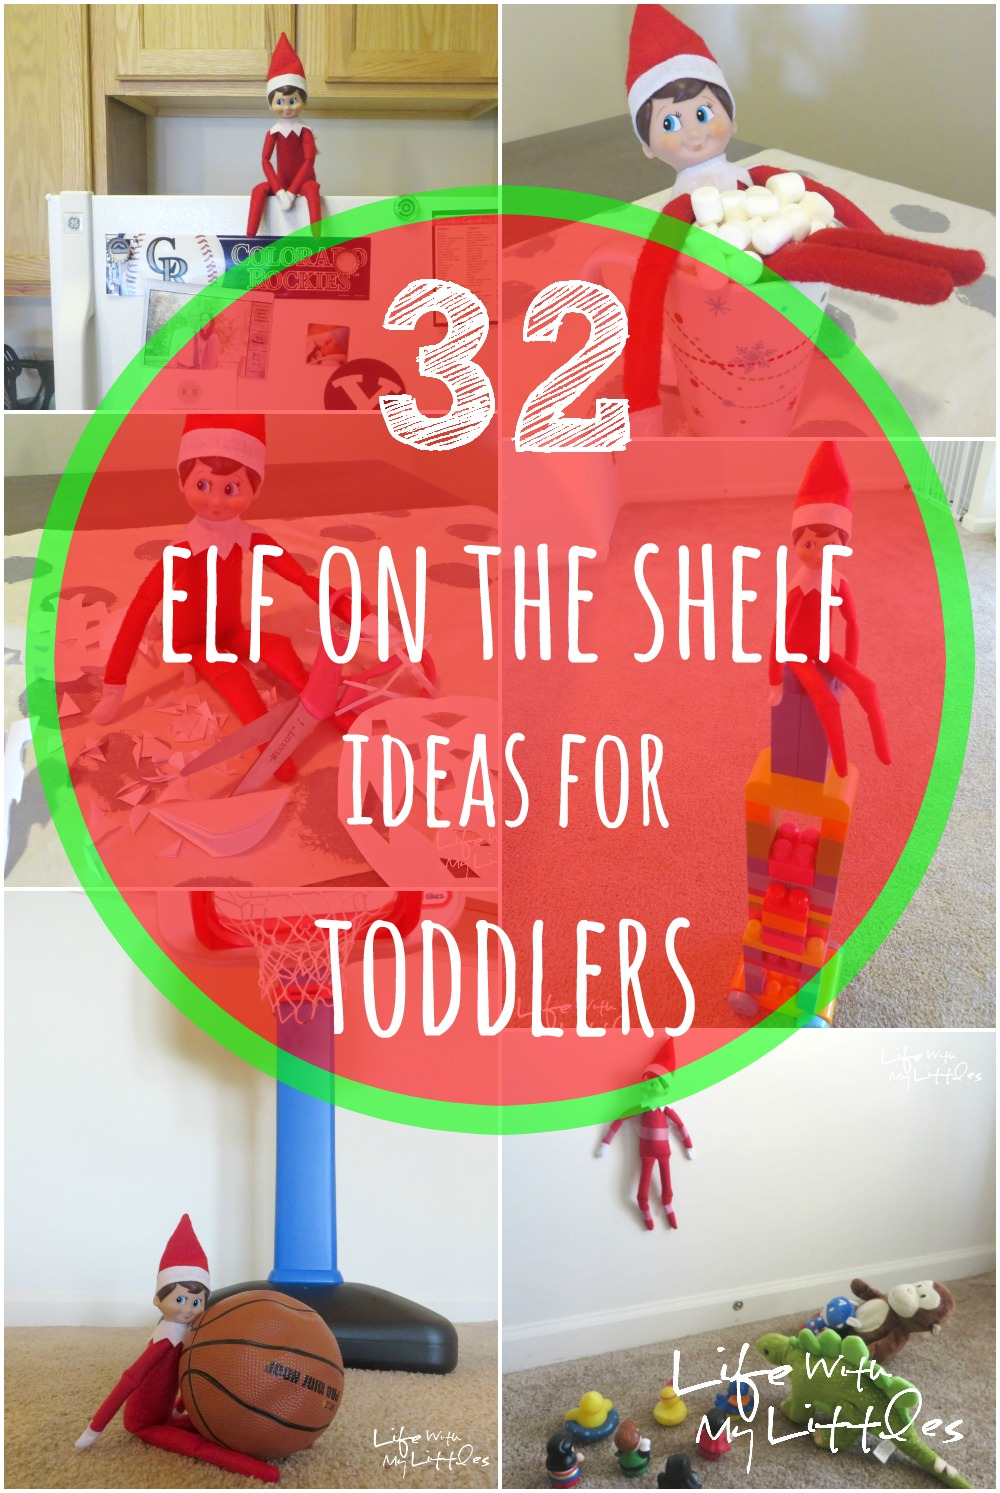 32 Best Staying Power Images On Pinterest: 32 Best Elf On The Shelf Ideas For Toddlers